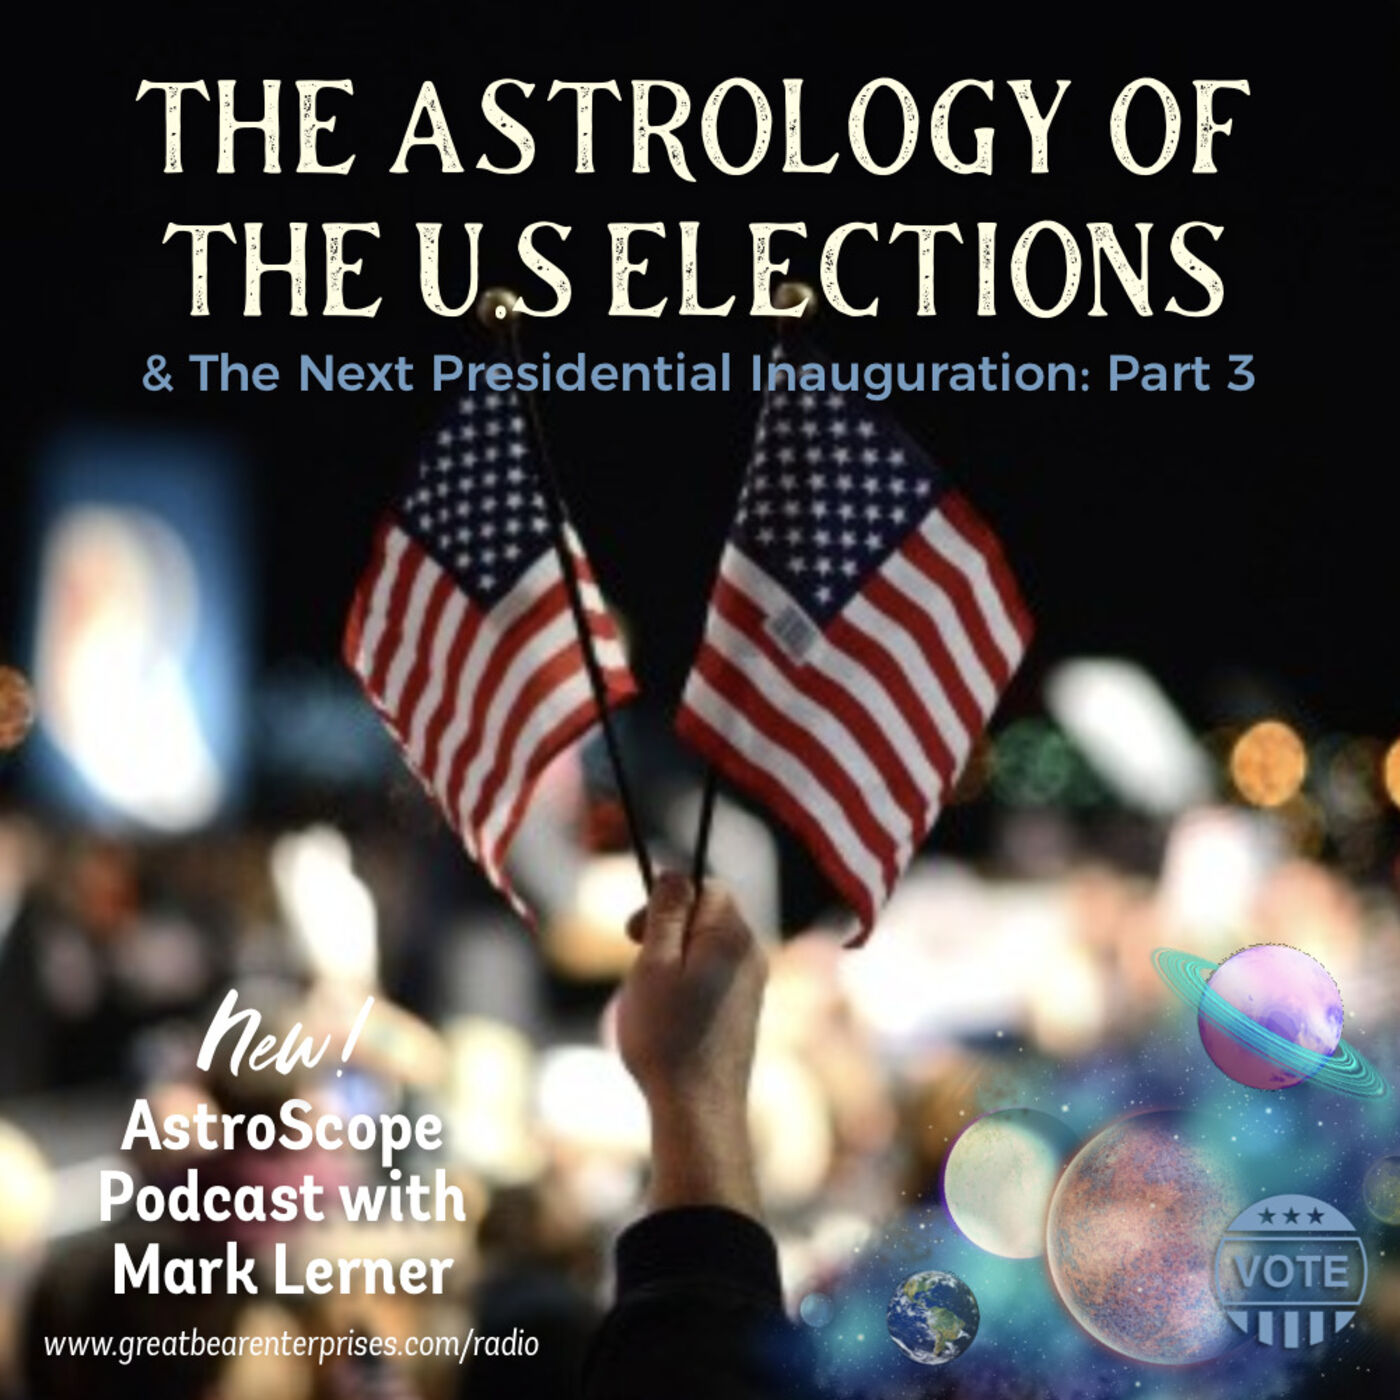 The Astrology of the 2020 U.S. Elections & the Next Presidential Inauguration: Part 3